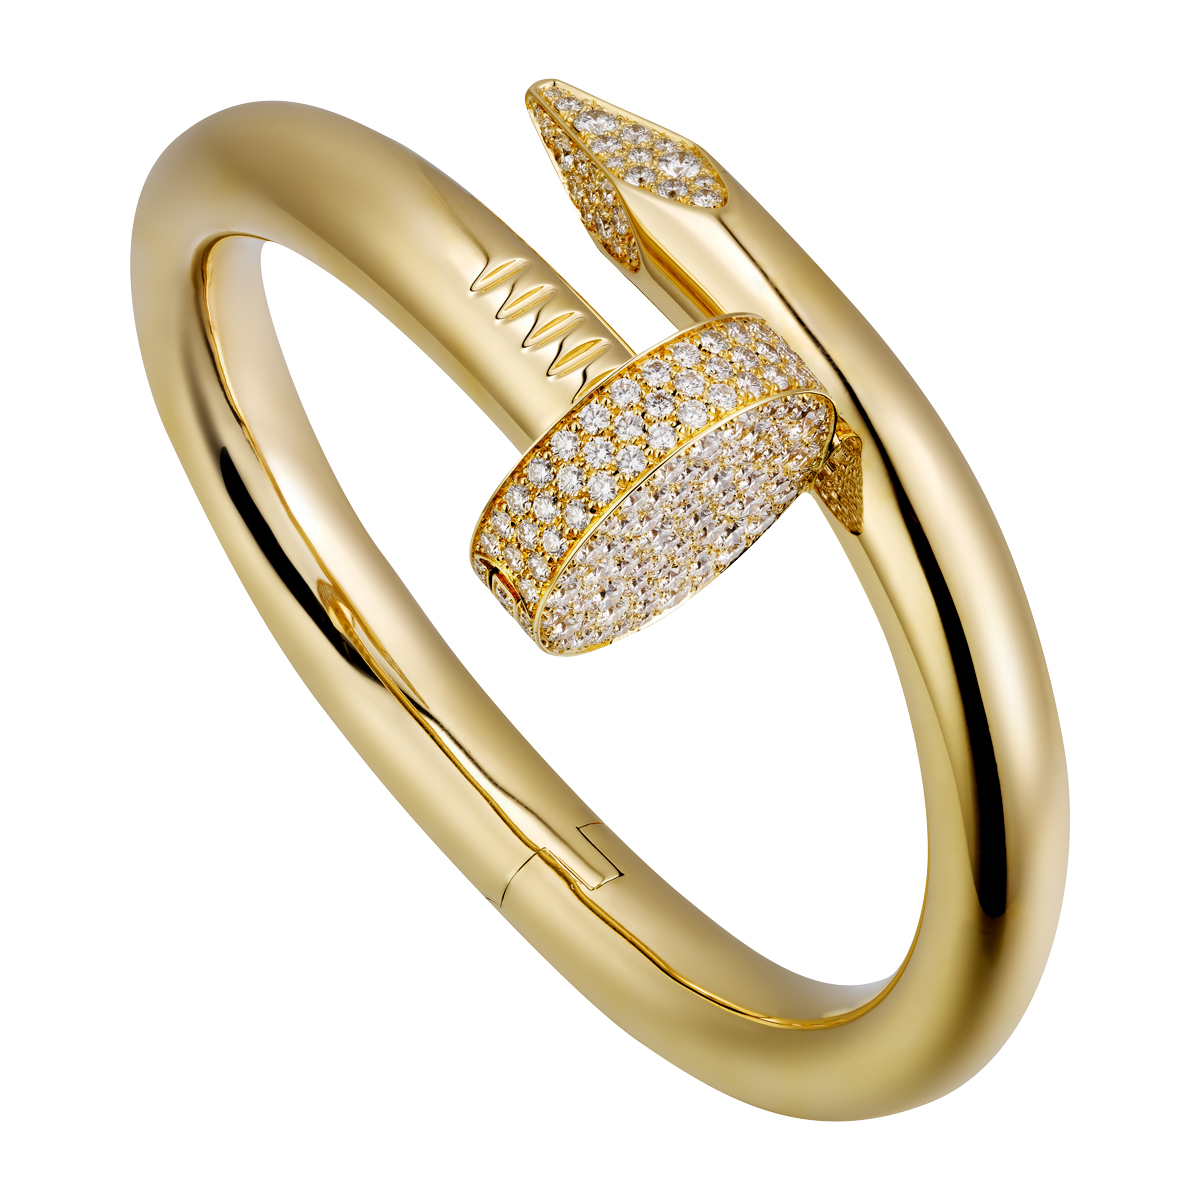 Juste Un Clou - Ring in Gelbgold mit Diamanten